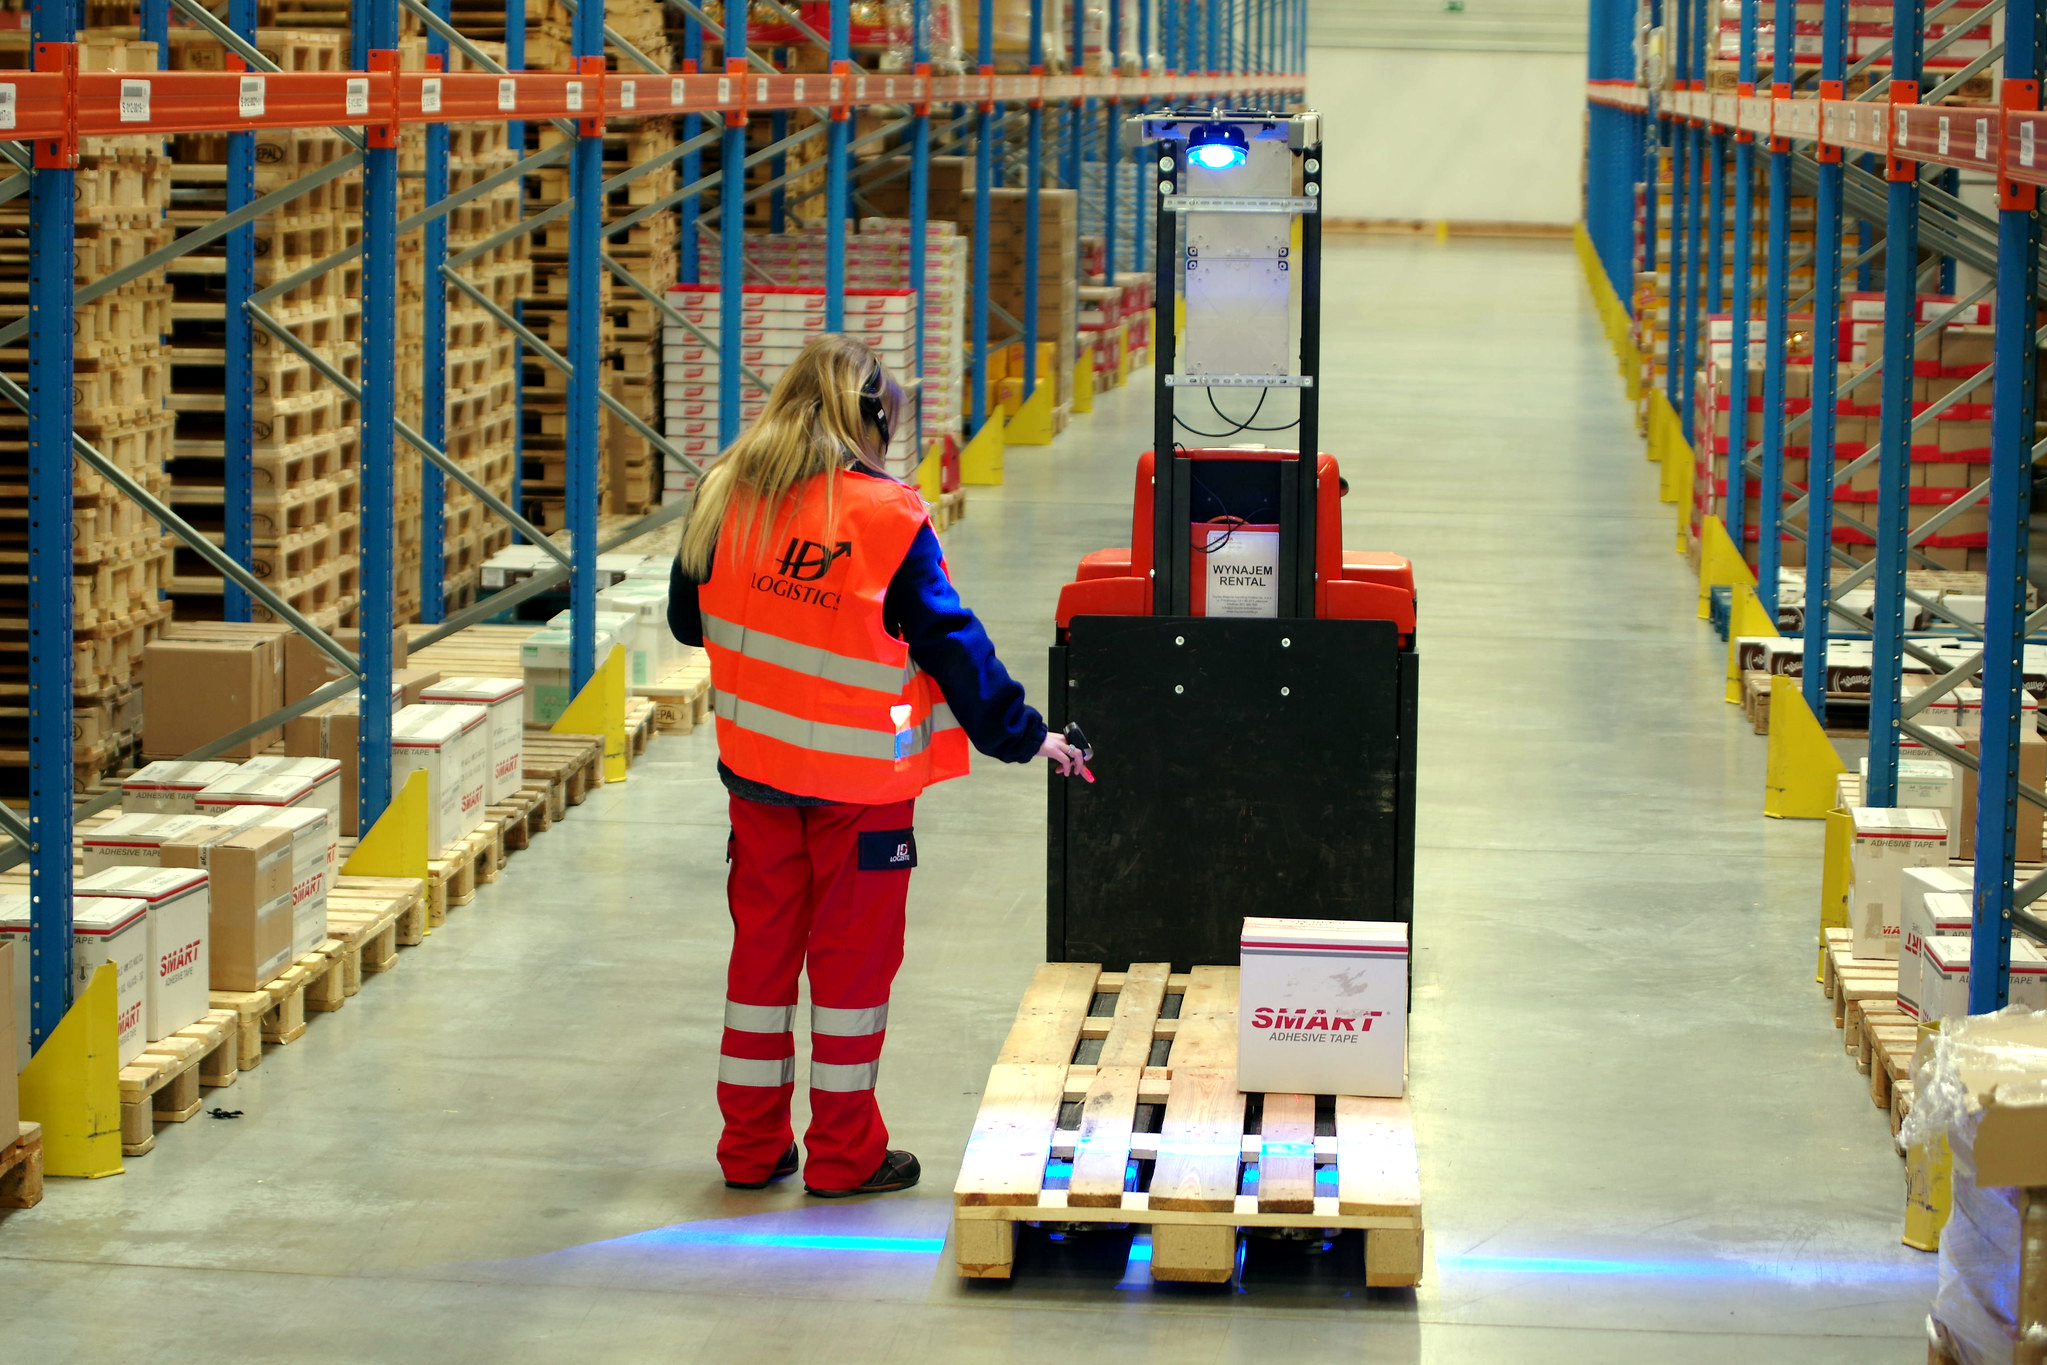 See what integrated monitoring of warehouse processes can do for you